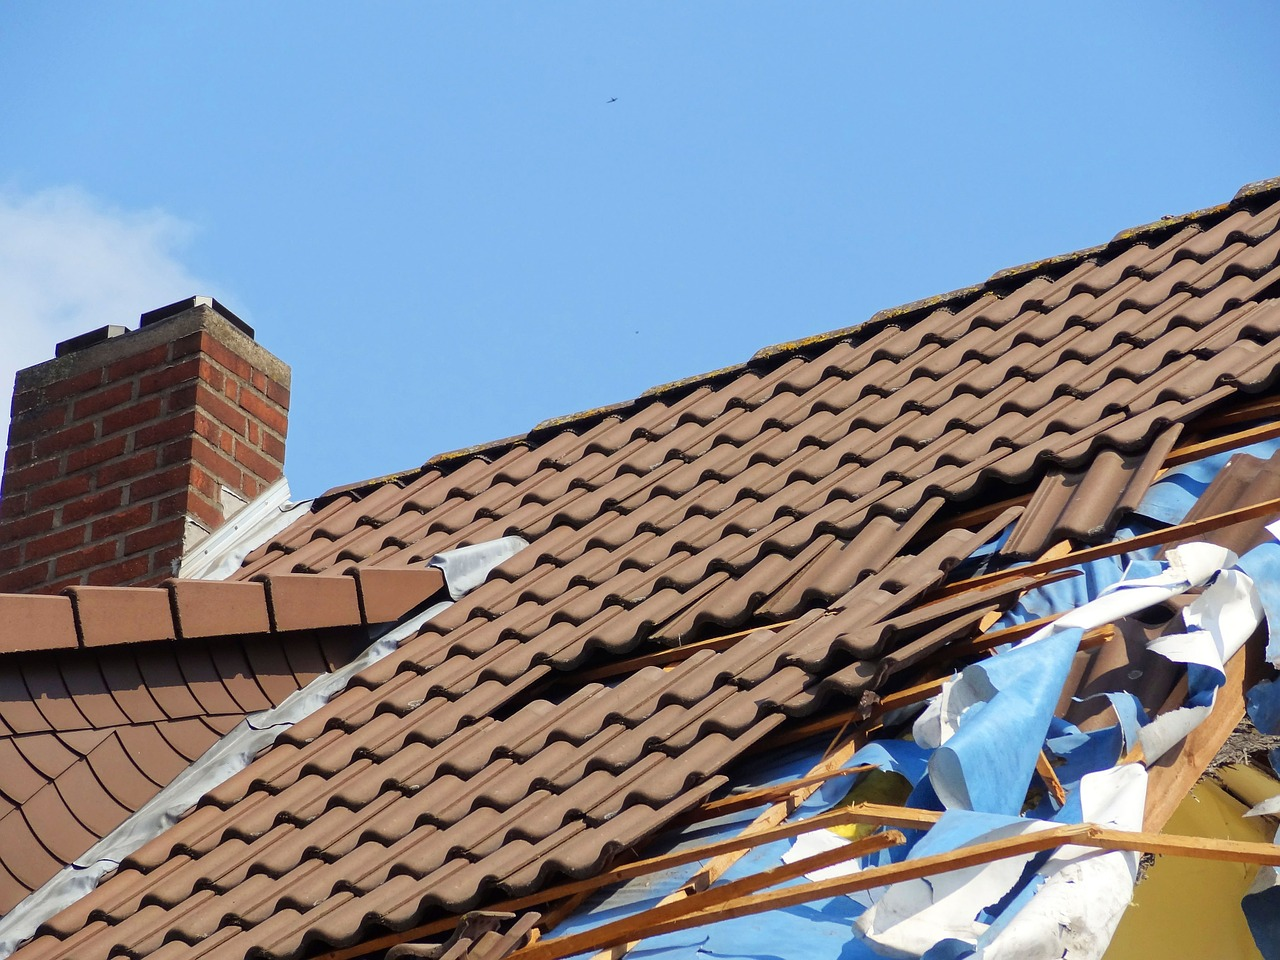 Certified Fire and Smoke Removal, Lancaster Fire and Smoke Restoration, Jacob's Ladder Roofing and Restoration